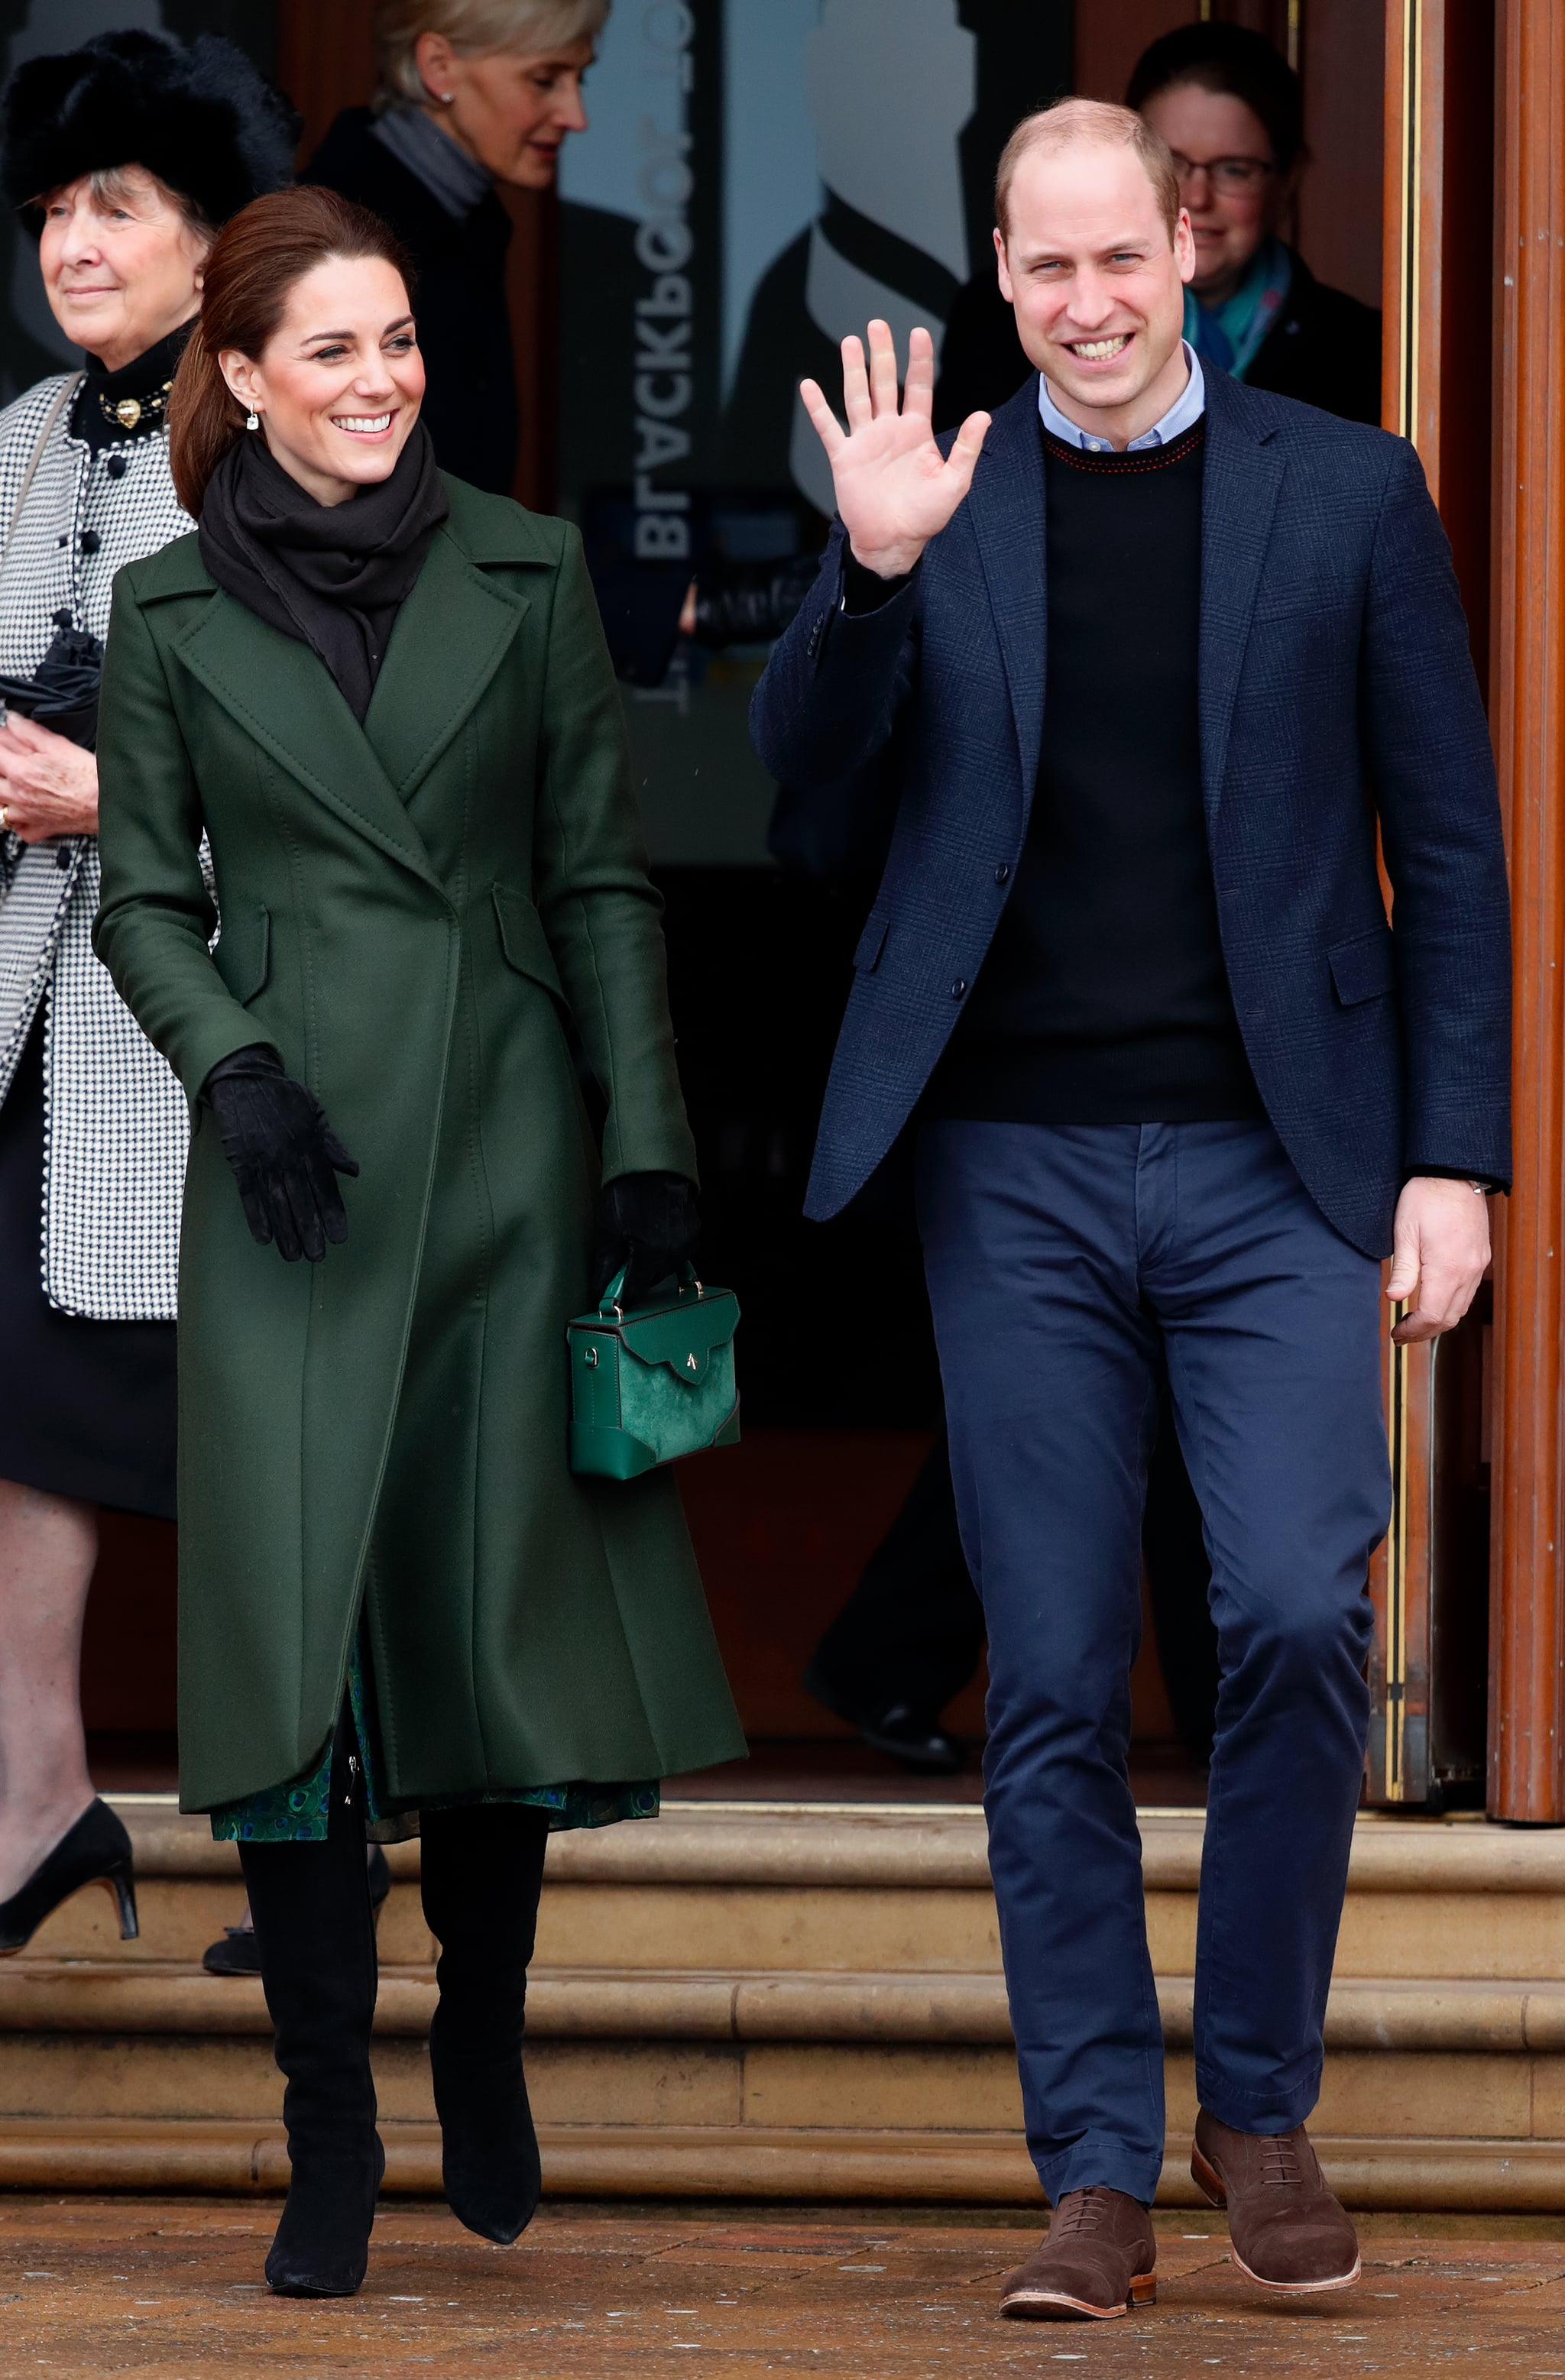 BLACKPOOL, UNITED KINGDOM - MARCH 06: (EMBARGOED FOR PUBLICATION IN UK NEWSPAPERS UNTIL 24 HOURS AFTER CREATE DATE AND TIME) Catherine, Duchess of Cambridge and Prince William, Duke of Cambridge visit Blackpool Tower and greet members of the public on the Comedy Carpet on March 6, 2019 in Blackpool, England. (Photo by Max Mumby/Indigo/Getty Images)